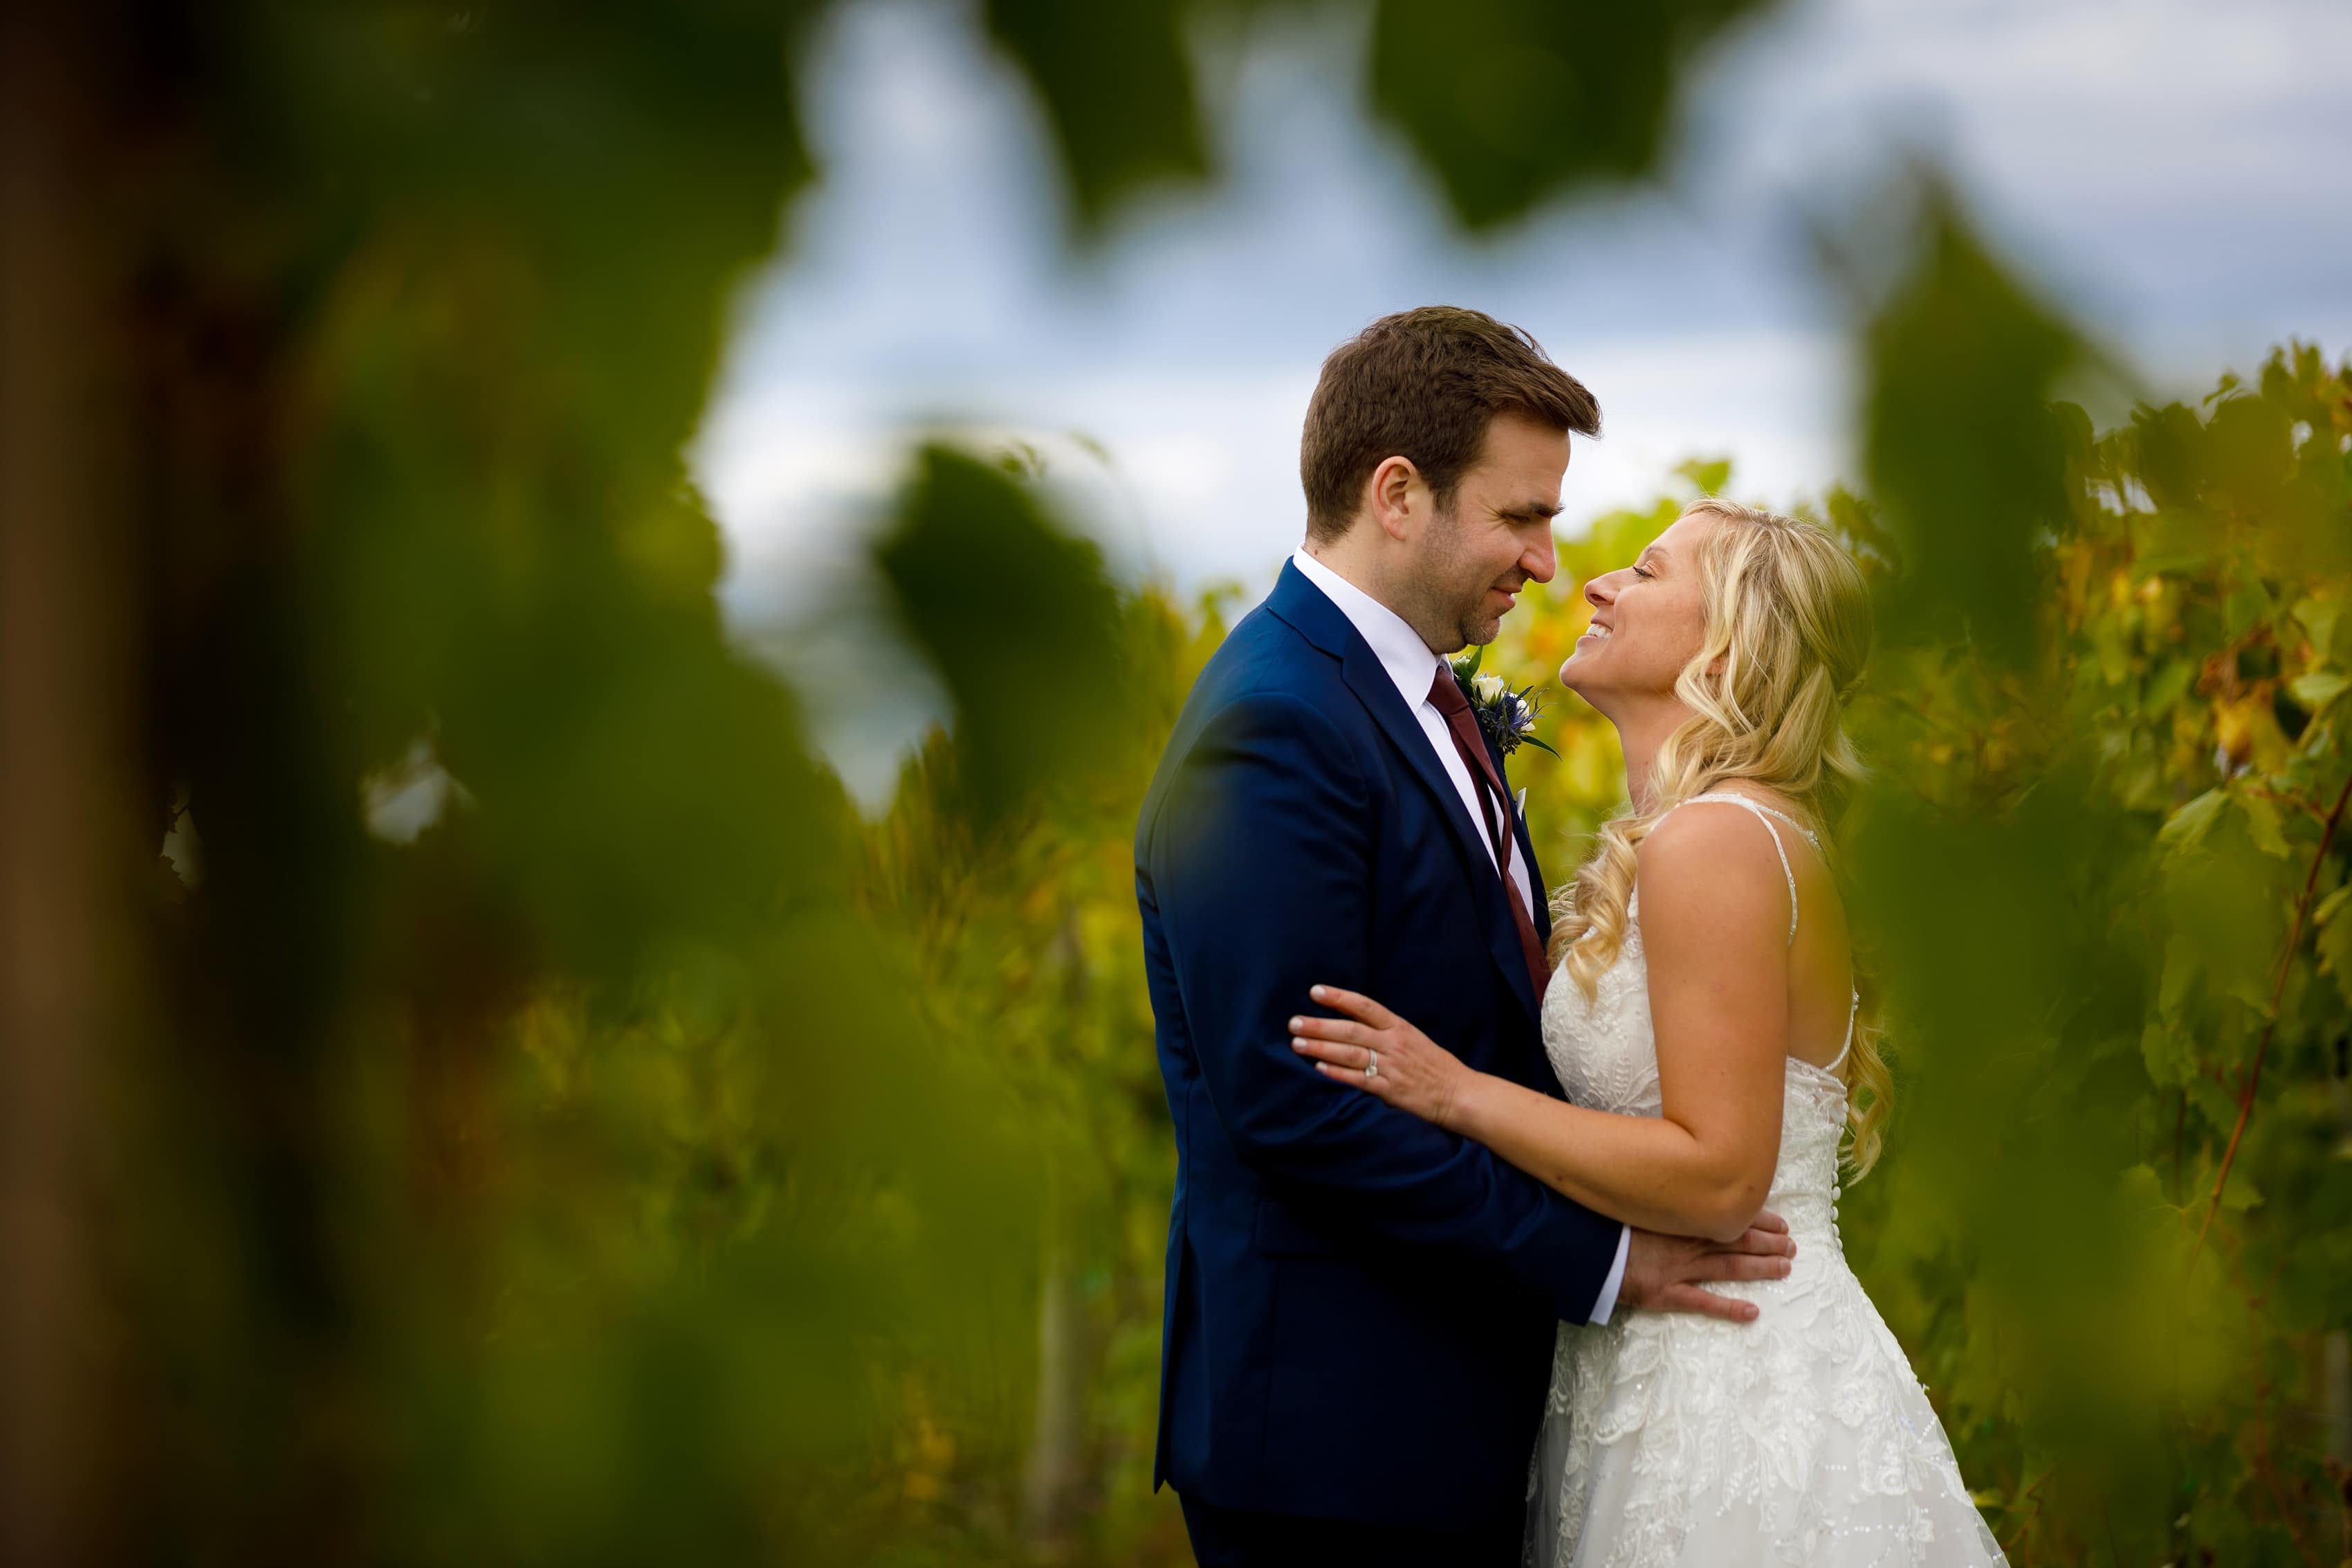 bride and groom pose in vineyard for wedding portraits at Petoskey Farms Vineyard & Winery with fall colors in the background